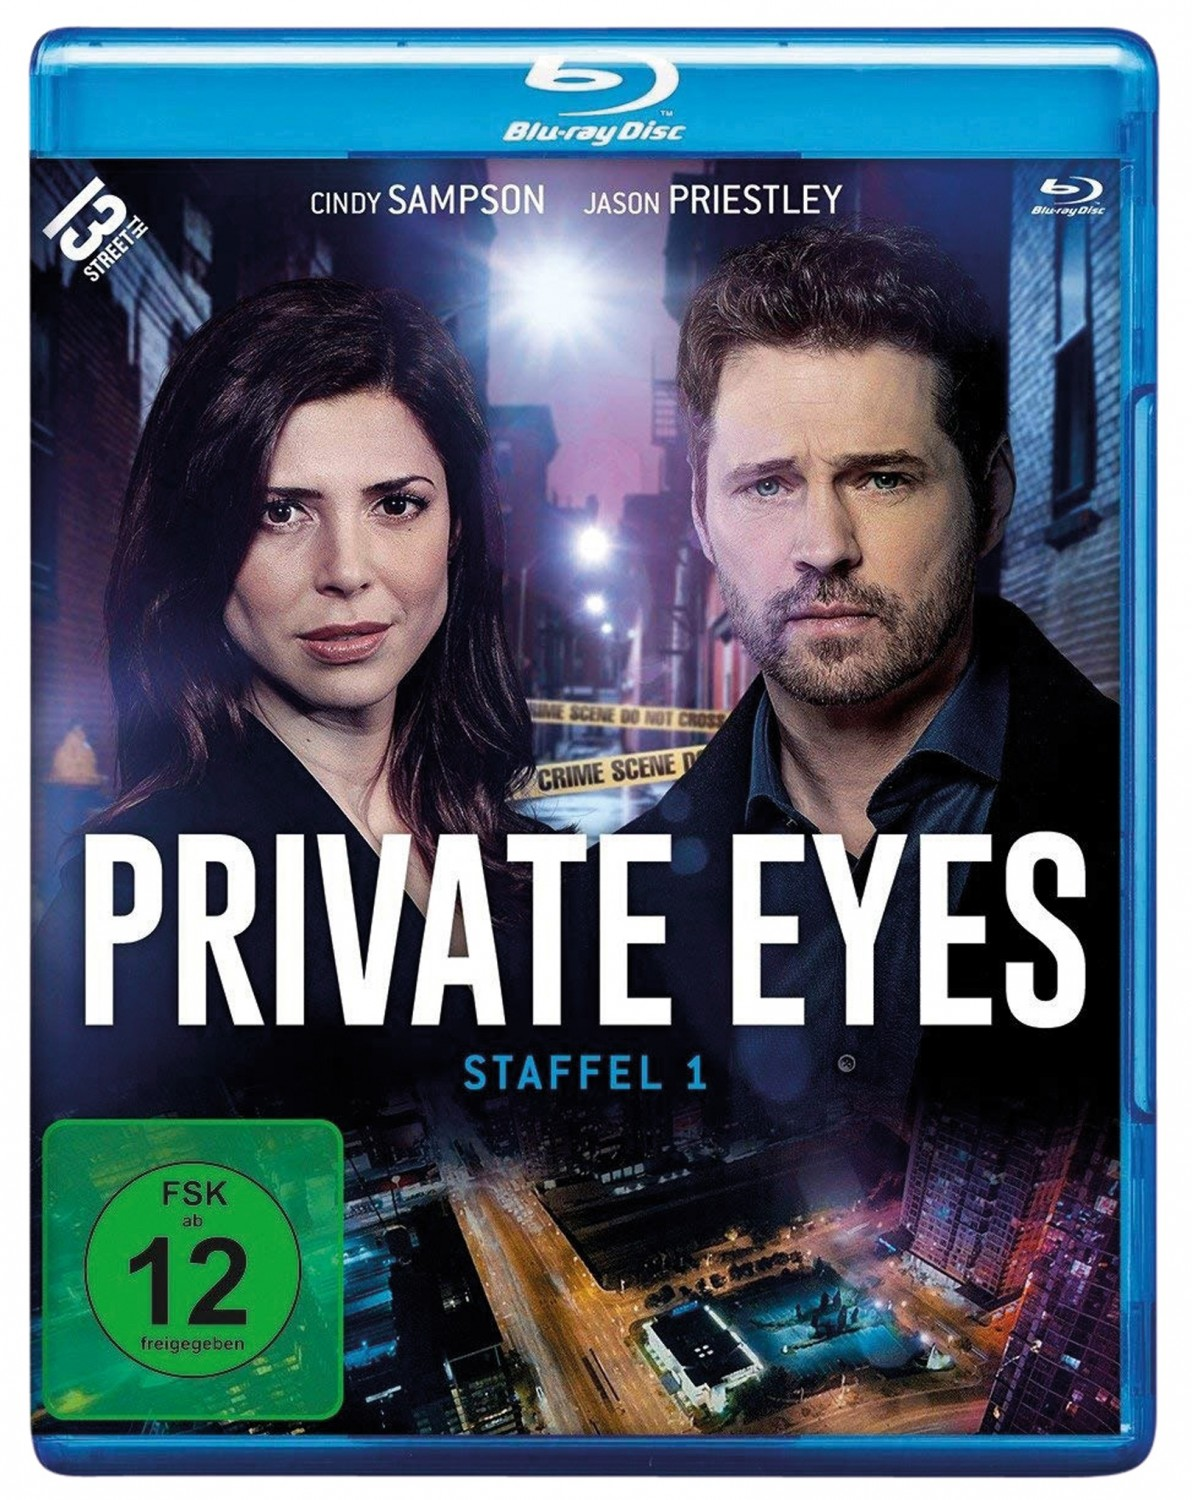 The Private Eyes DVD (1980) - Henstooth Video | OLDIES.com